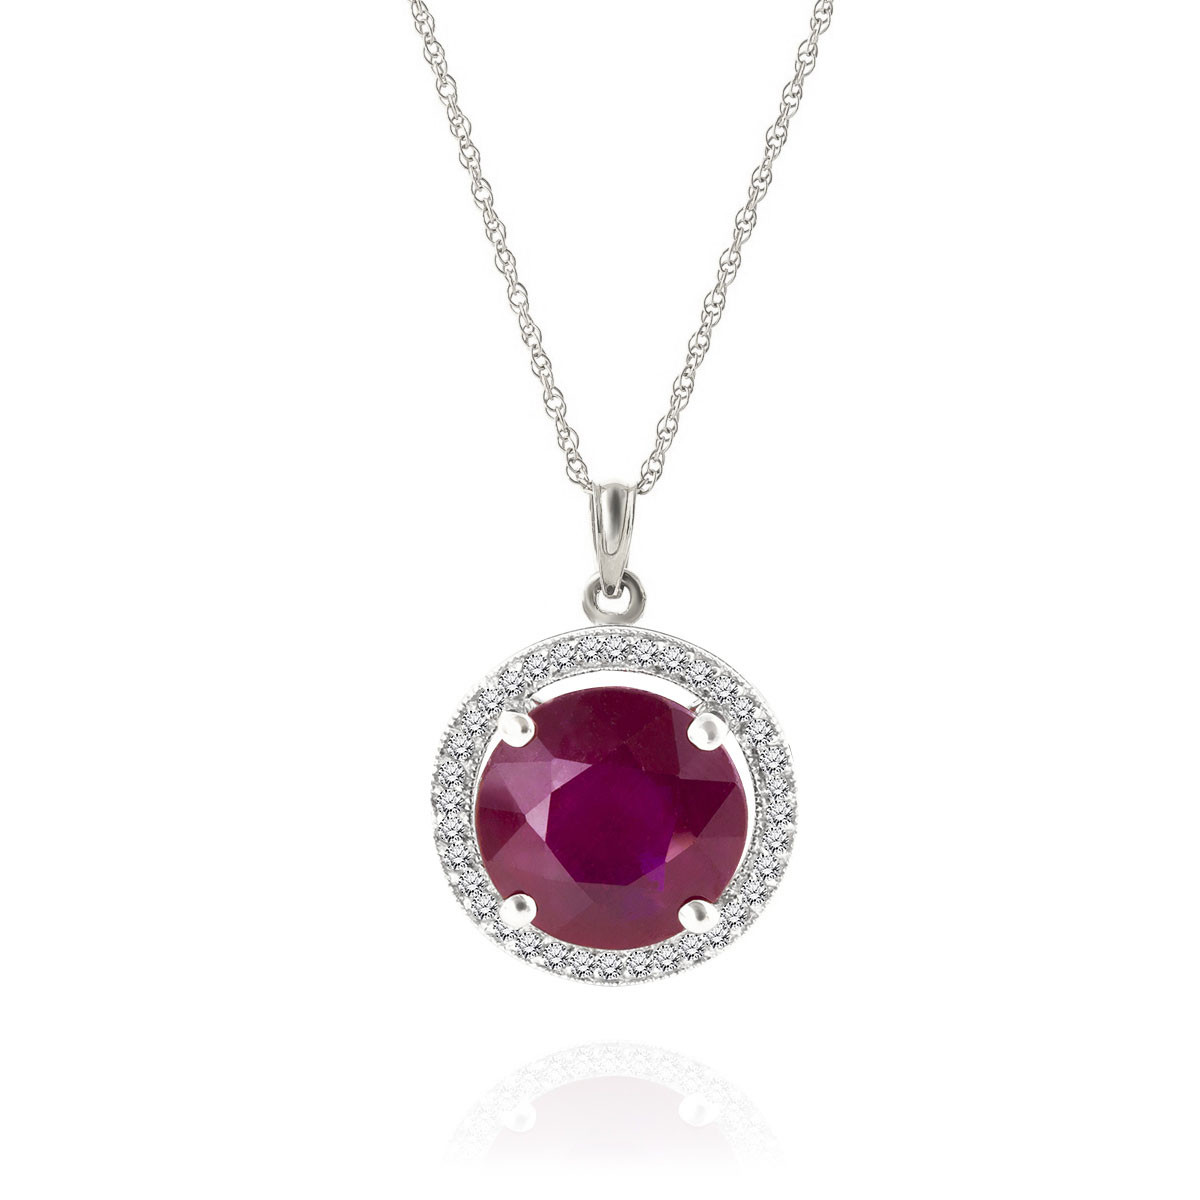 Ruby & Diamond Halo Pendant Necklace in 9ct White Gold